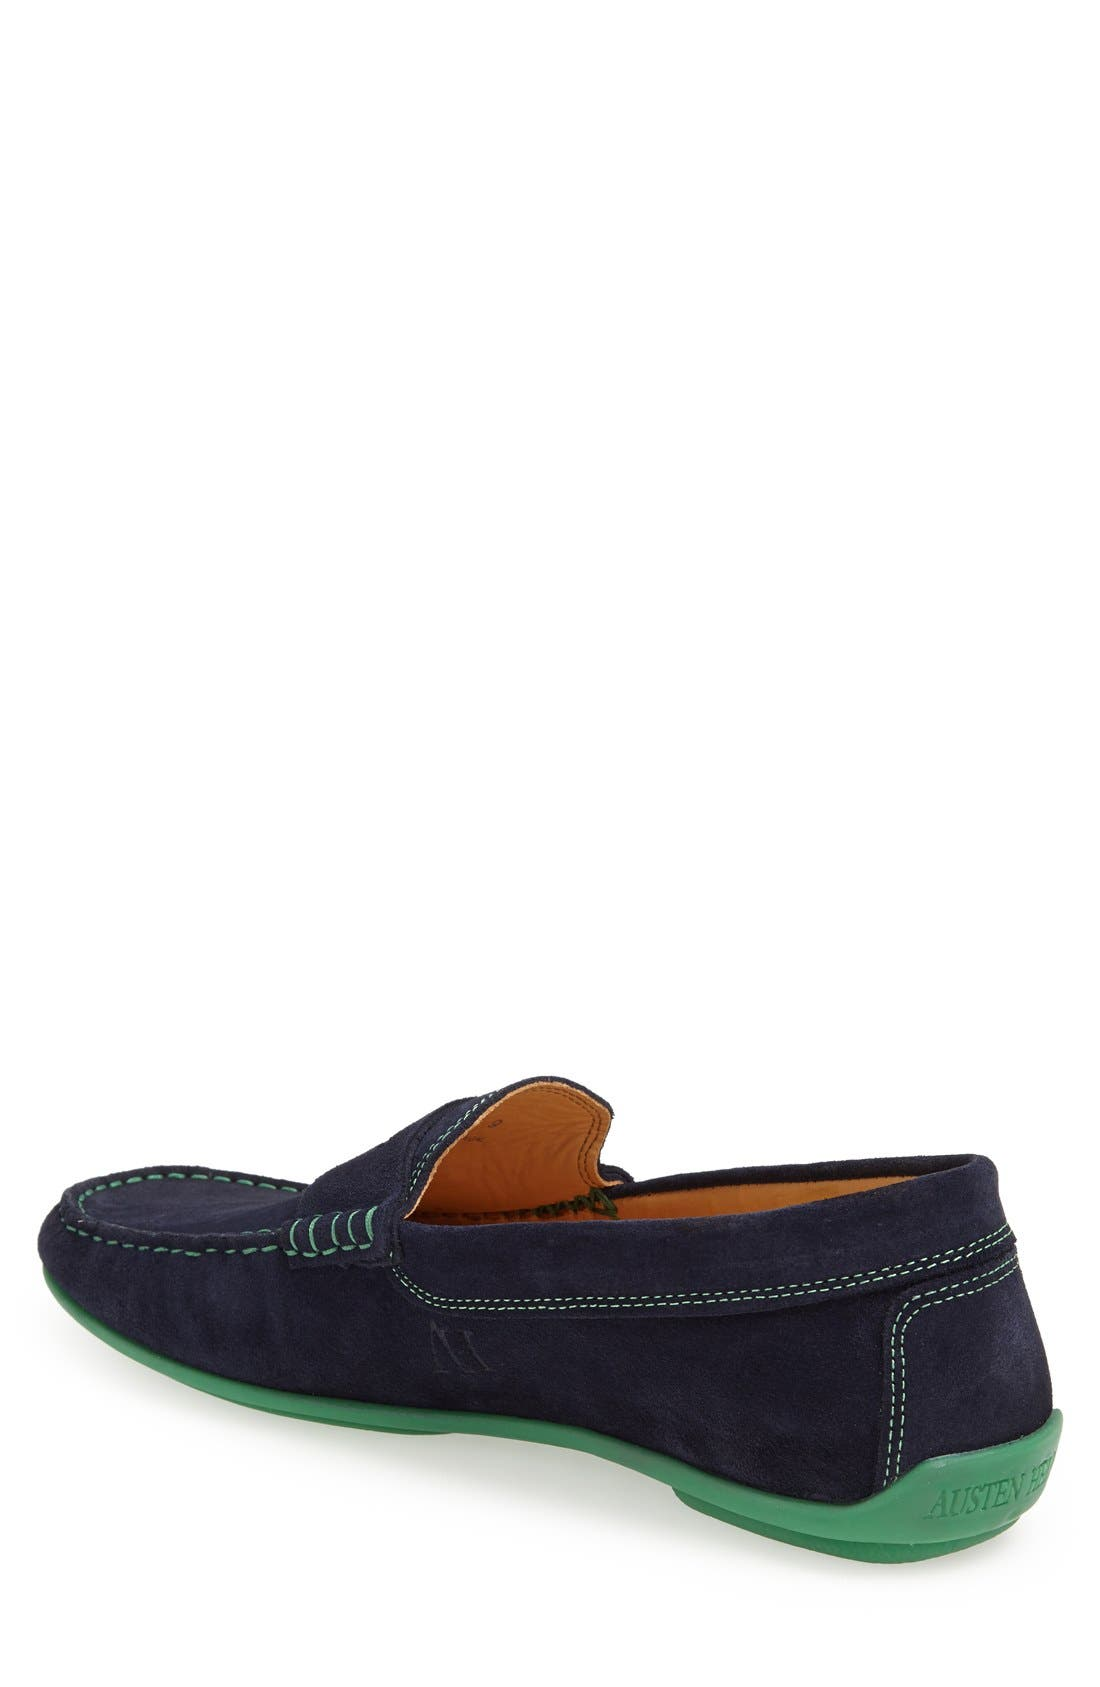 'Chathams' Penny Loafer,                             Alternate thumbnail 2, color,                             Navy Suede/ Green